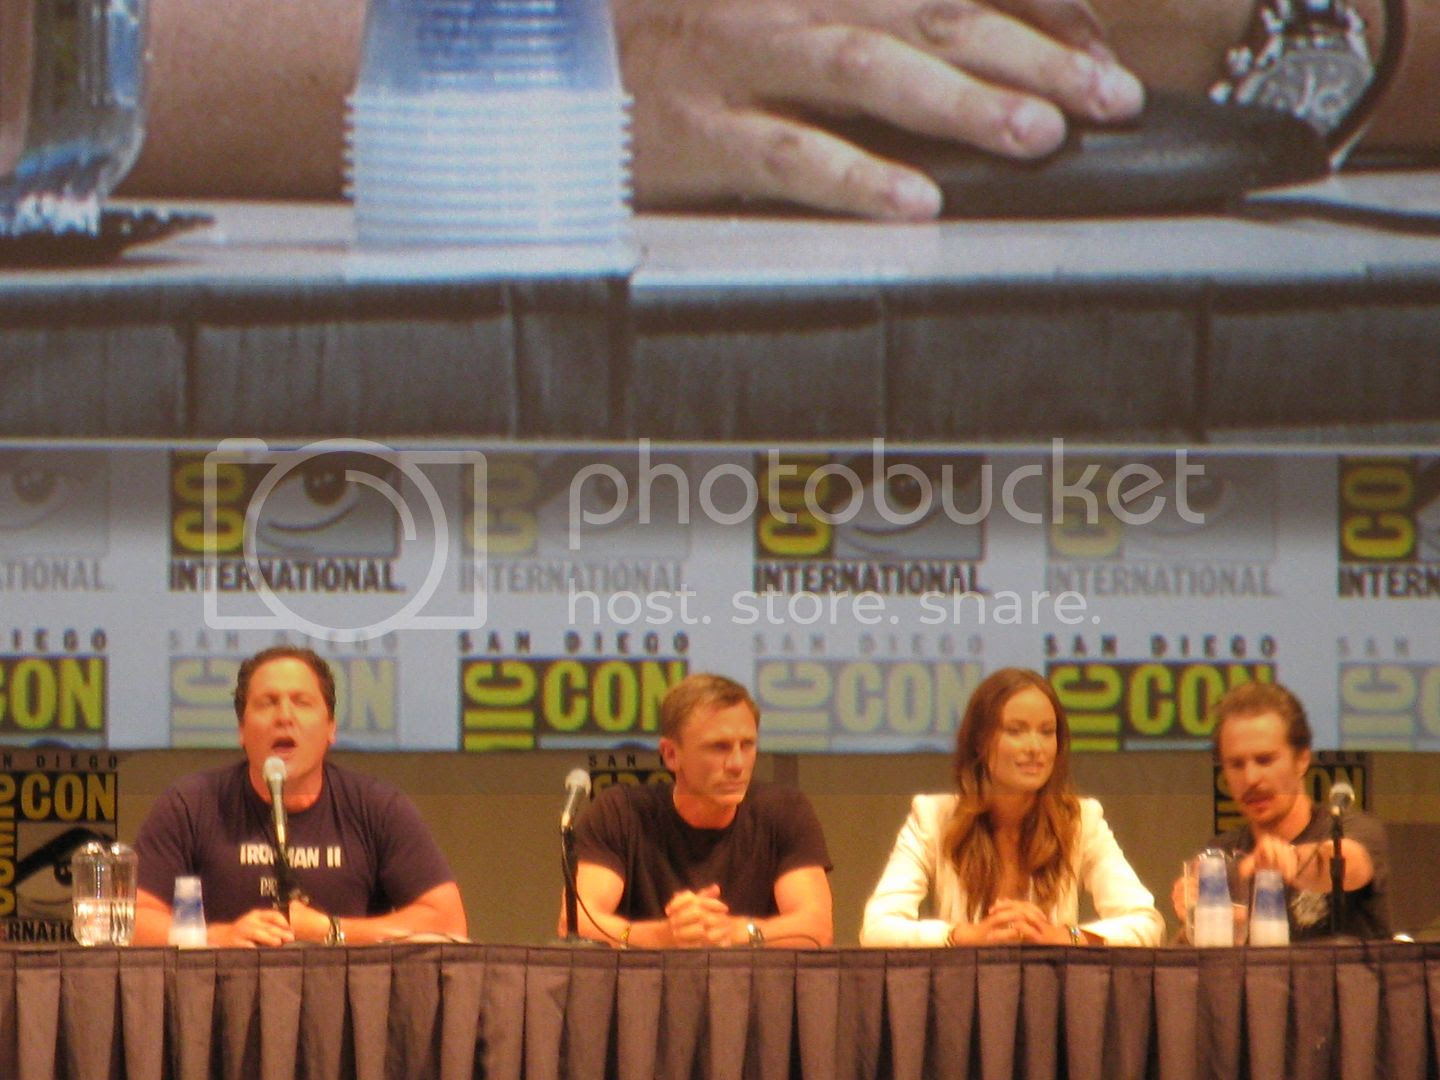 Cowboys and Aliens Panel at Comic Con - San Diego, California